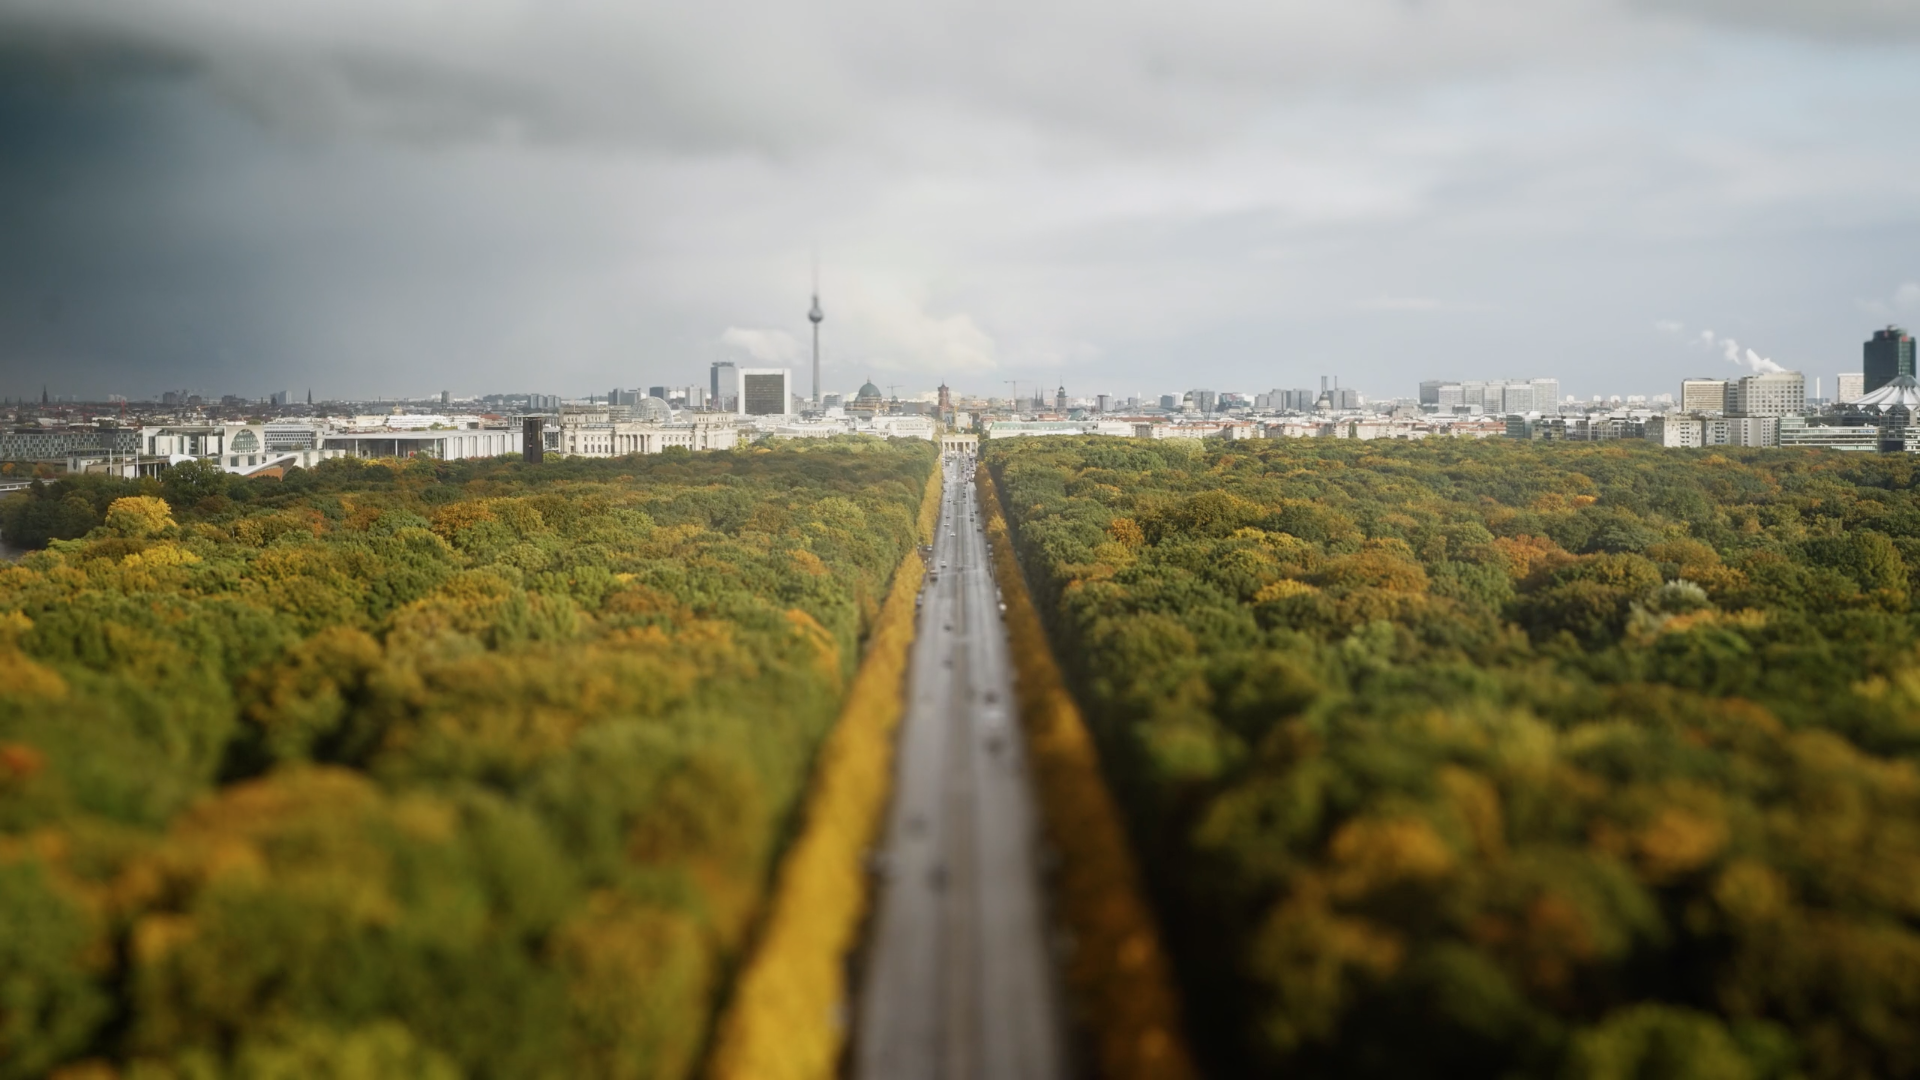 Berlin becomes a miniature city in this short documentary